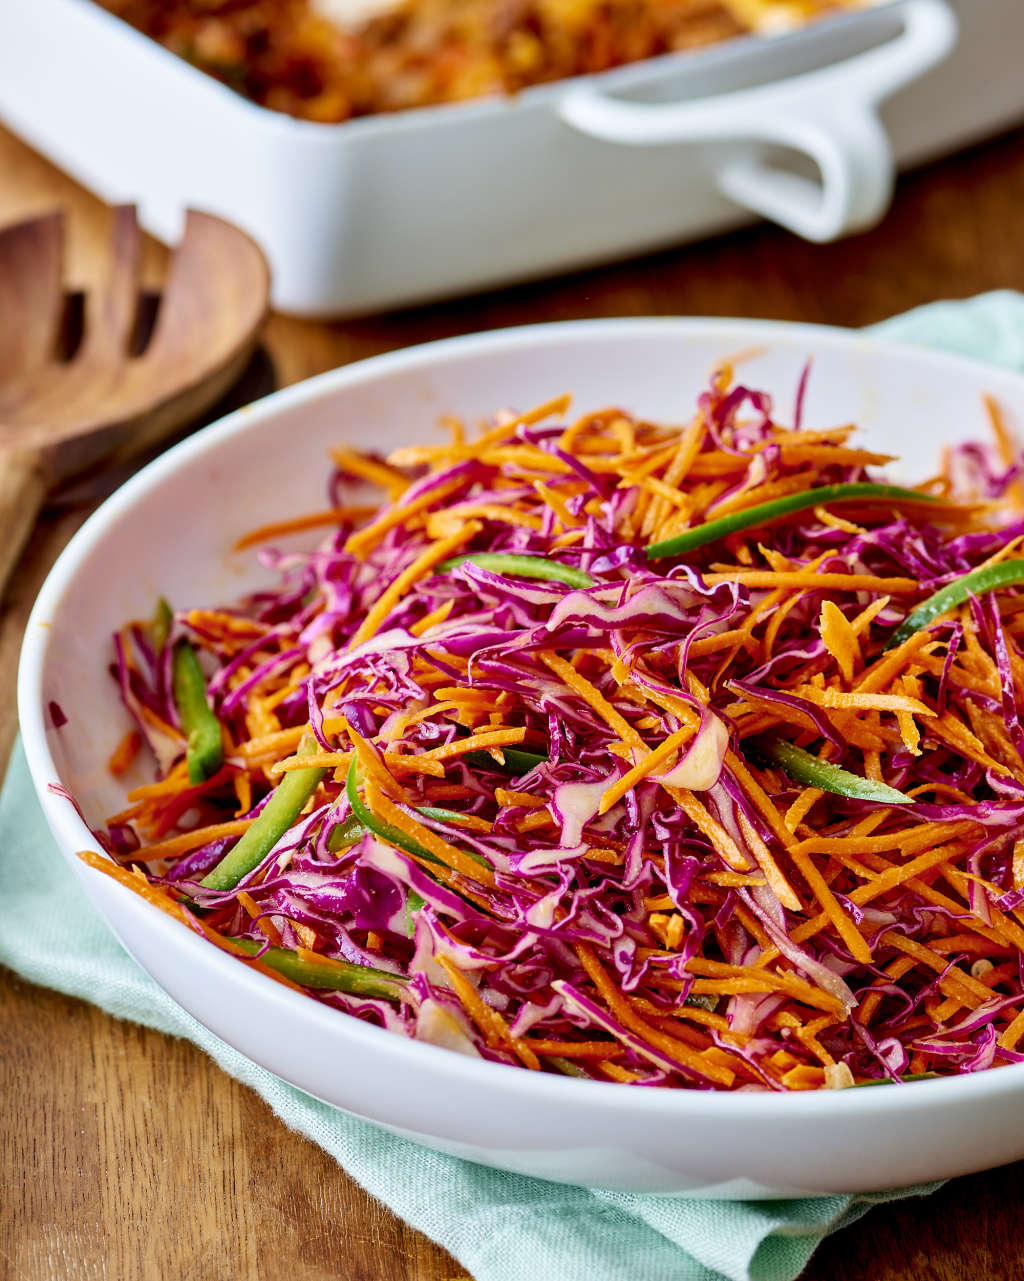 This Tangy Cabbage & Jalapeño Slaw Takes Just 5 Minutes